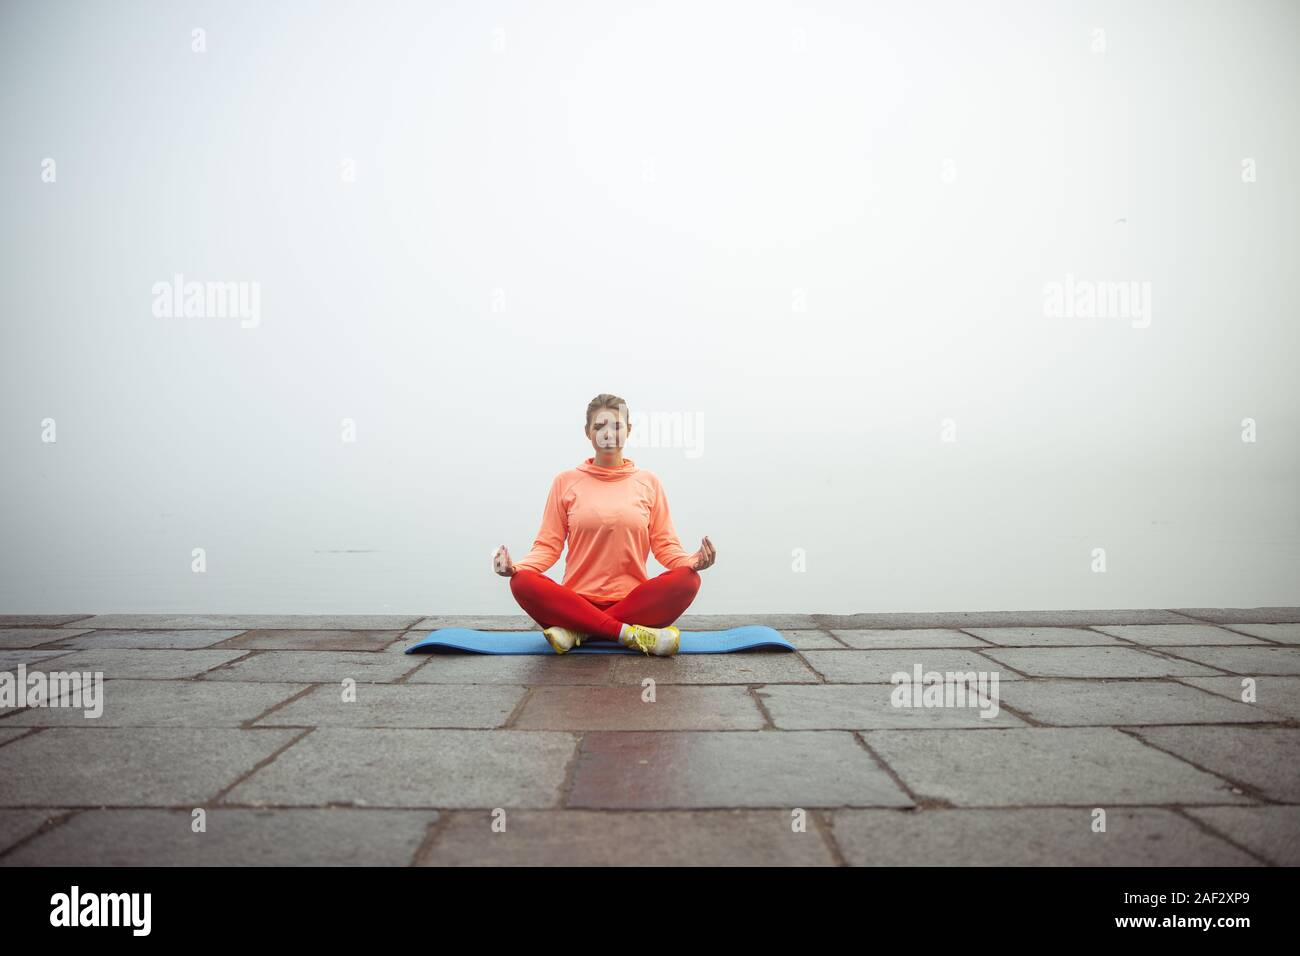 Yoga Banner Template High Resolution Stock Photography And Images Alamy